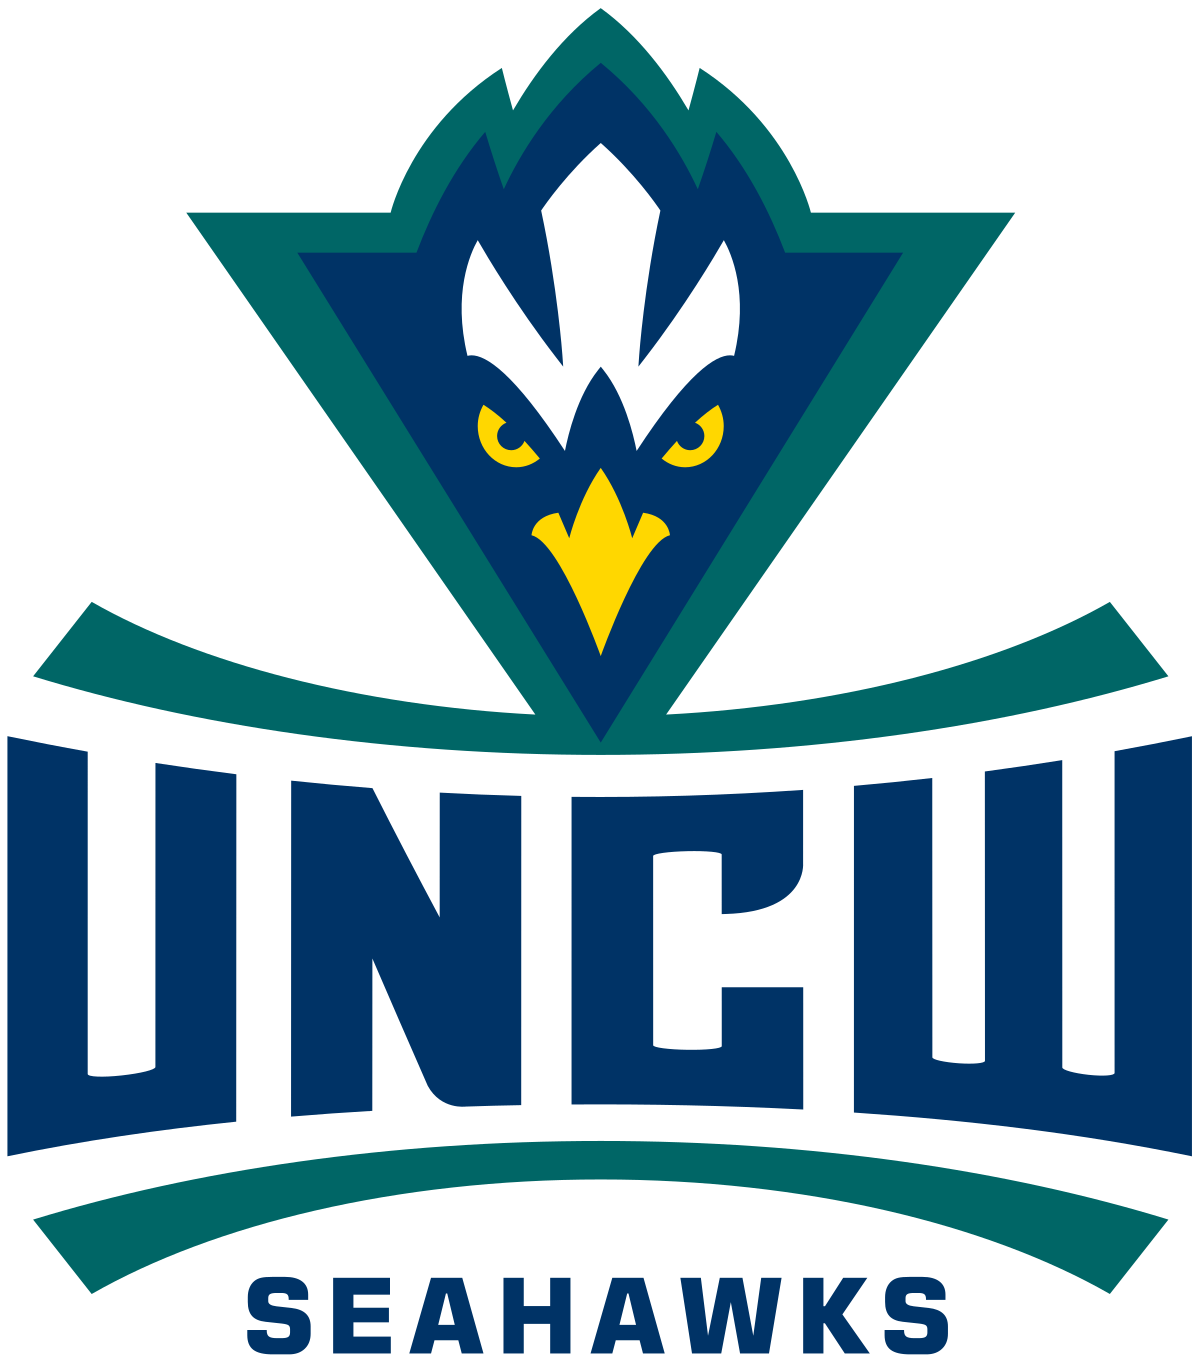 Unc wilmington wikipedia . Seahawks vector printable png